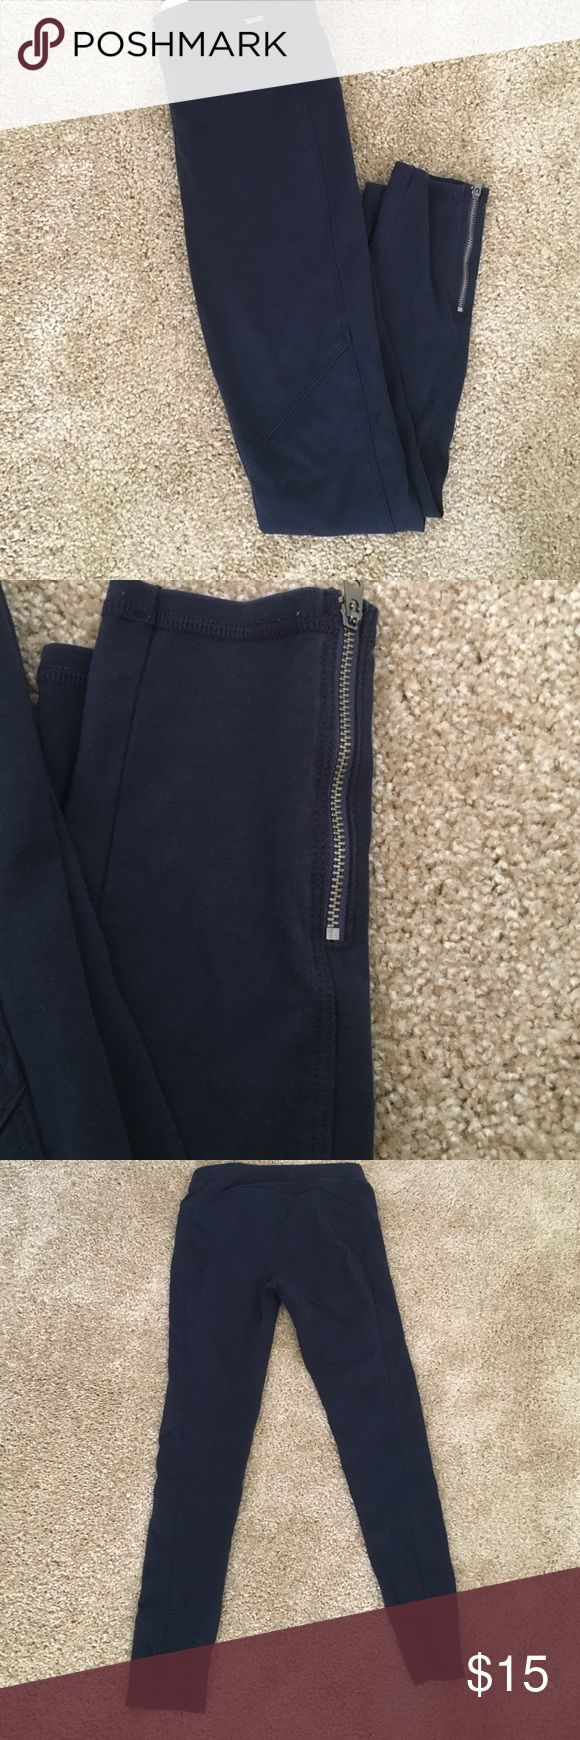 Abercrombie & Fitch navy blue leggings Very cute baby blue leggings size small. Zipper detailing on the bottom. In used but good conditon Abercrombie & Fitch Pants Leggings